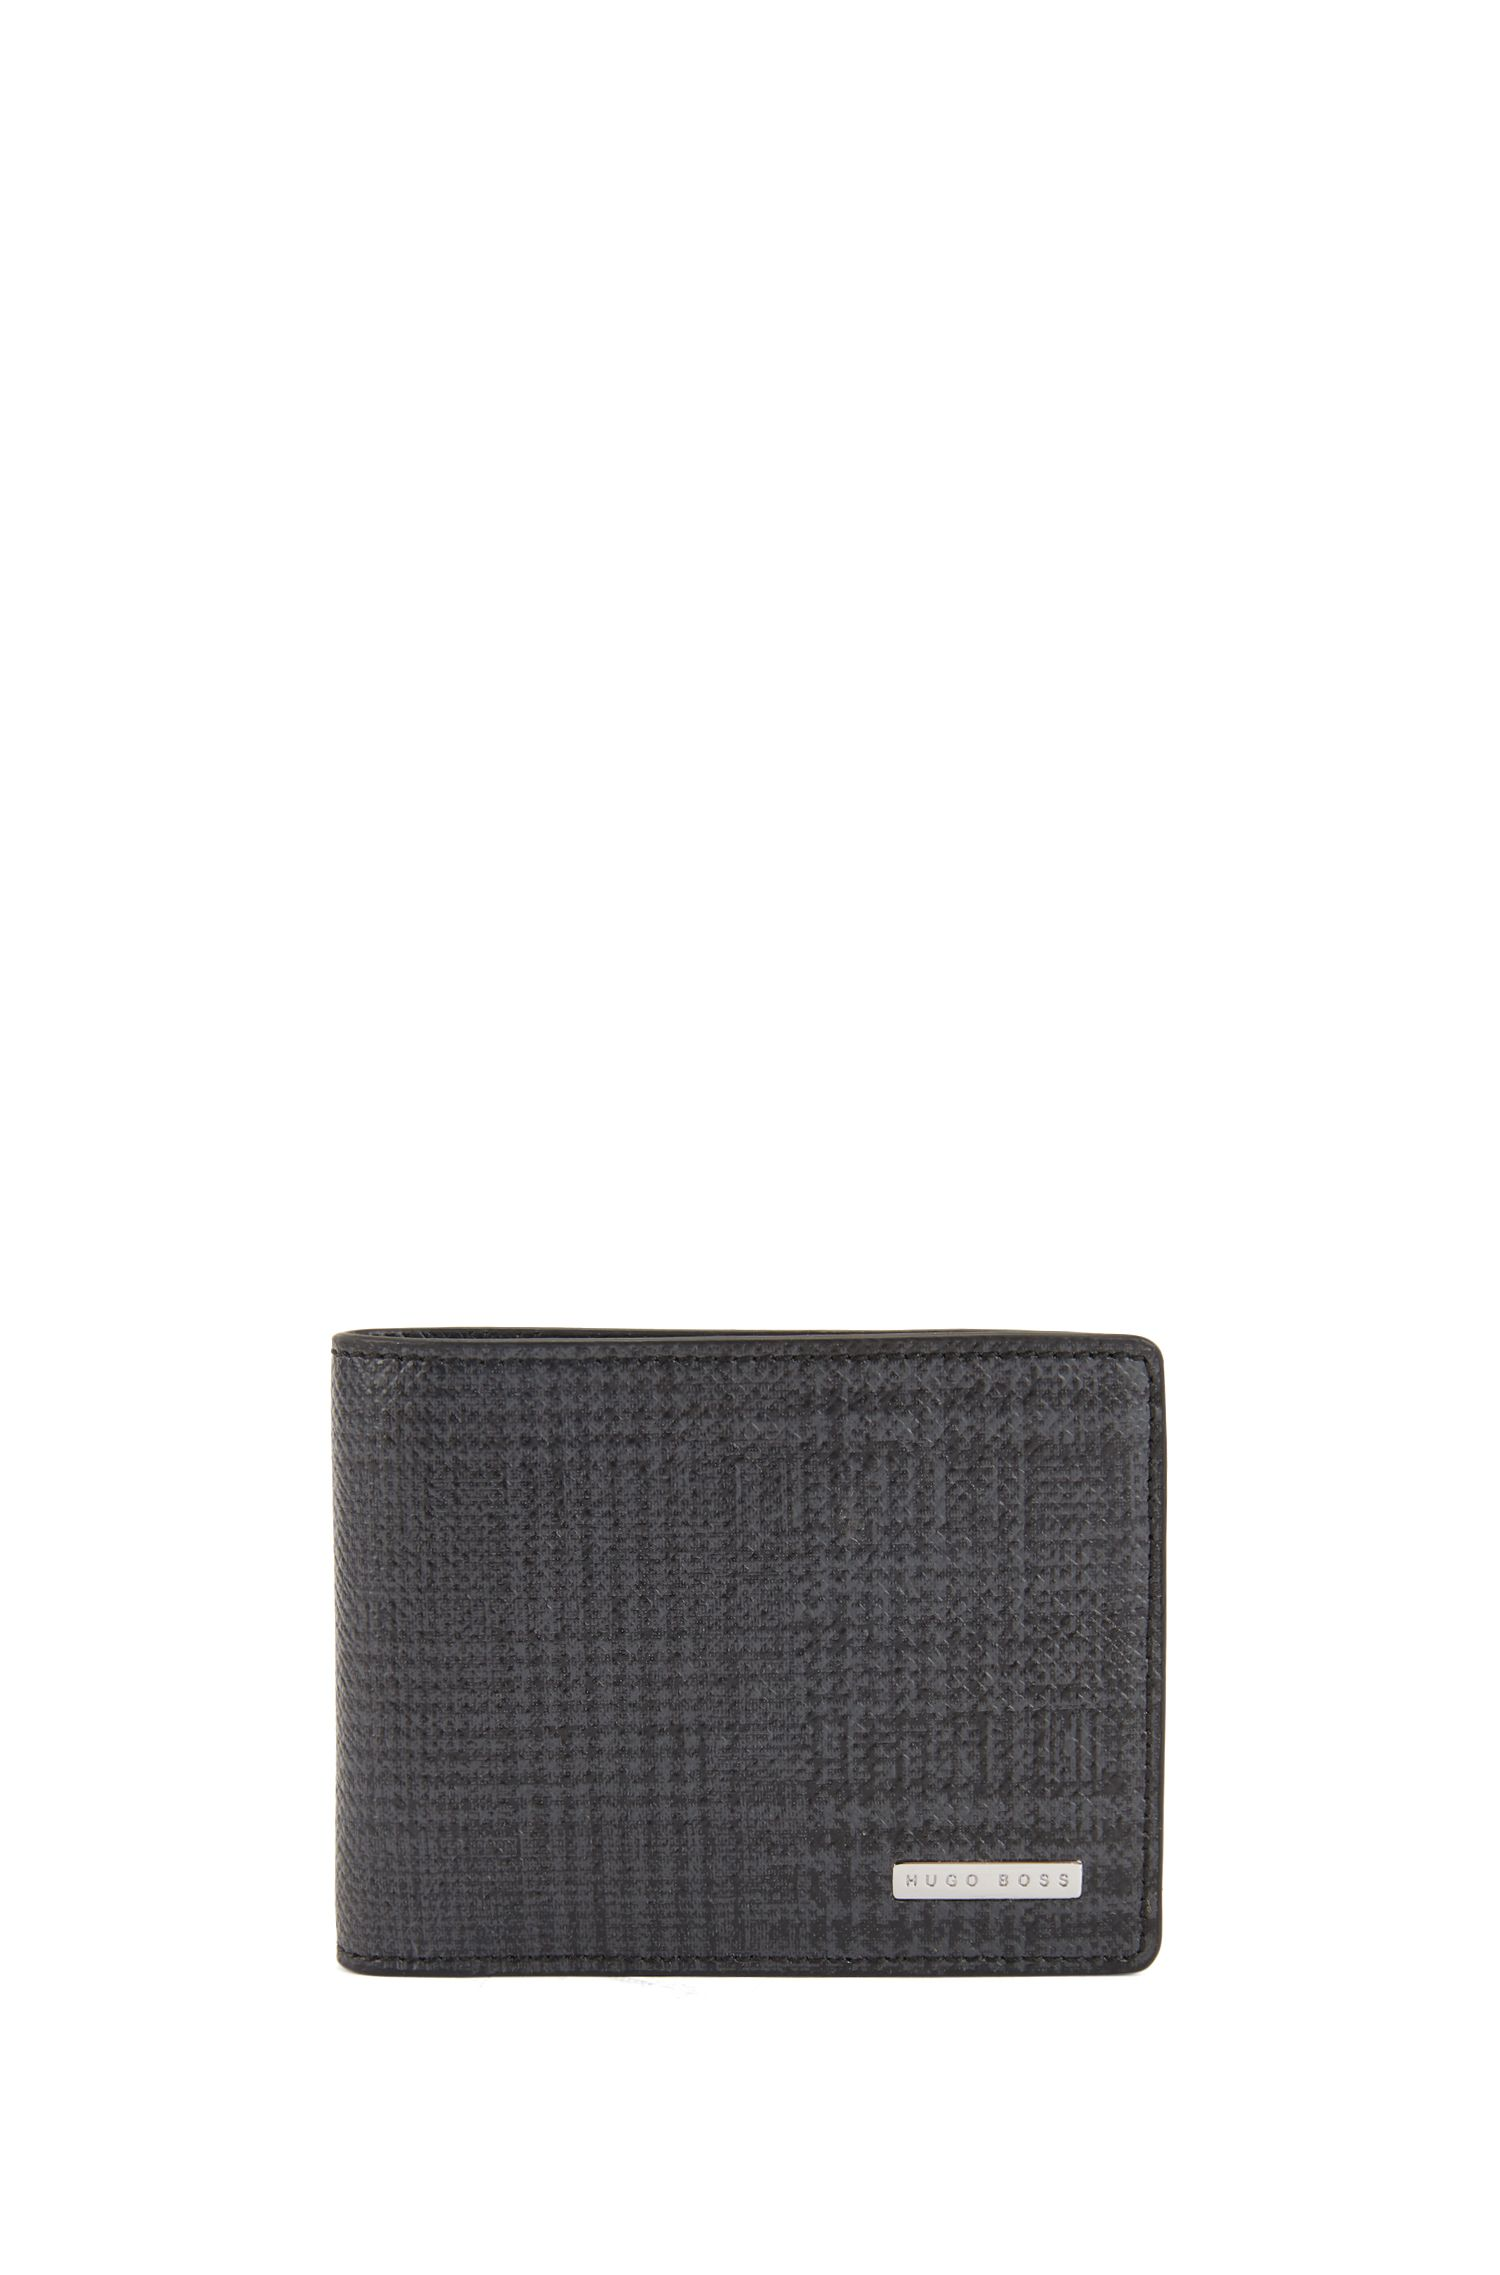 Signature Collection compact billfold wallet in check-print leather, Patterned